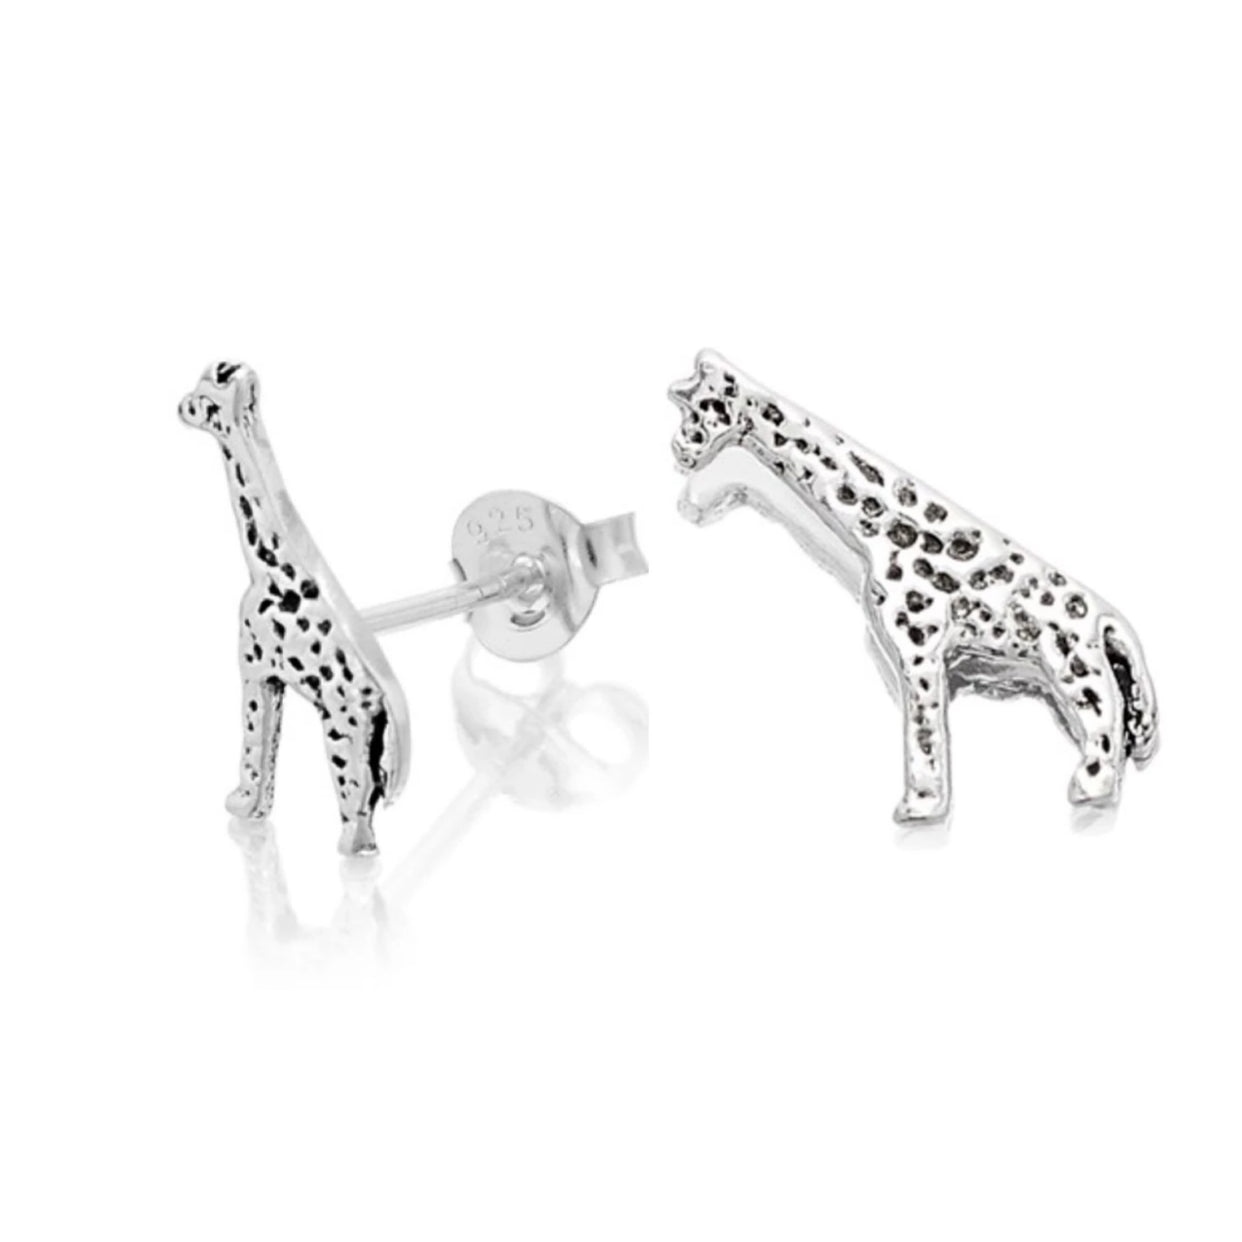 Long Neck Giraffe Stud Earrings